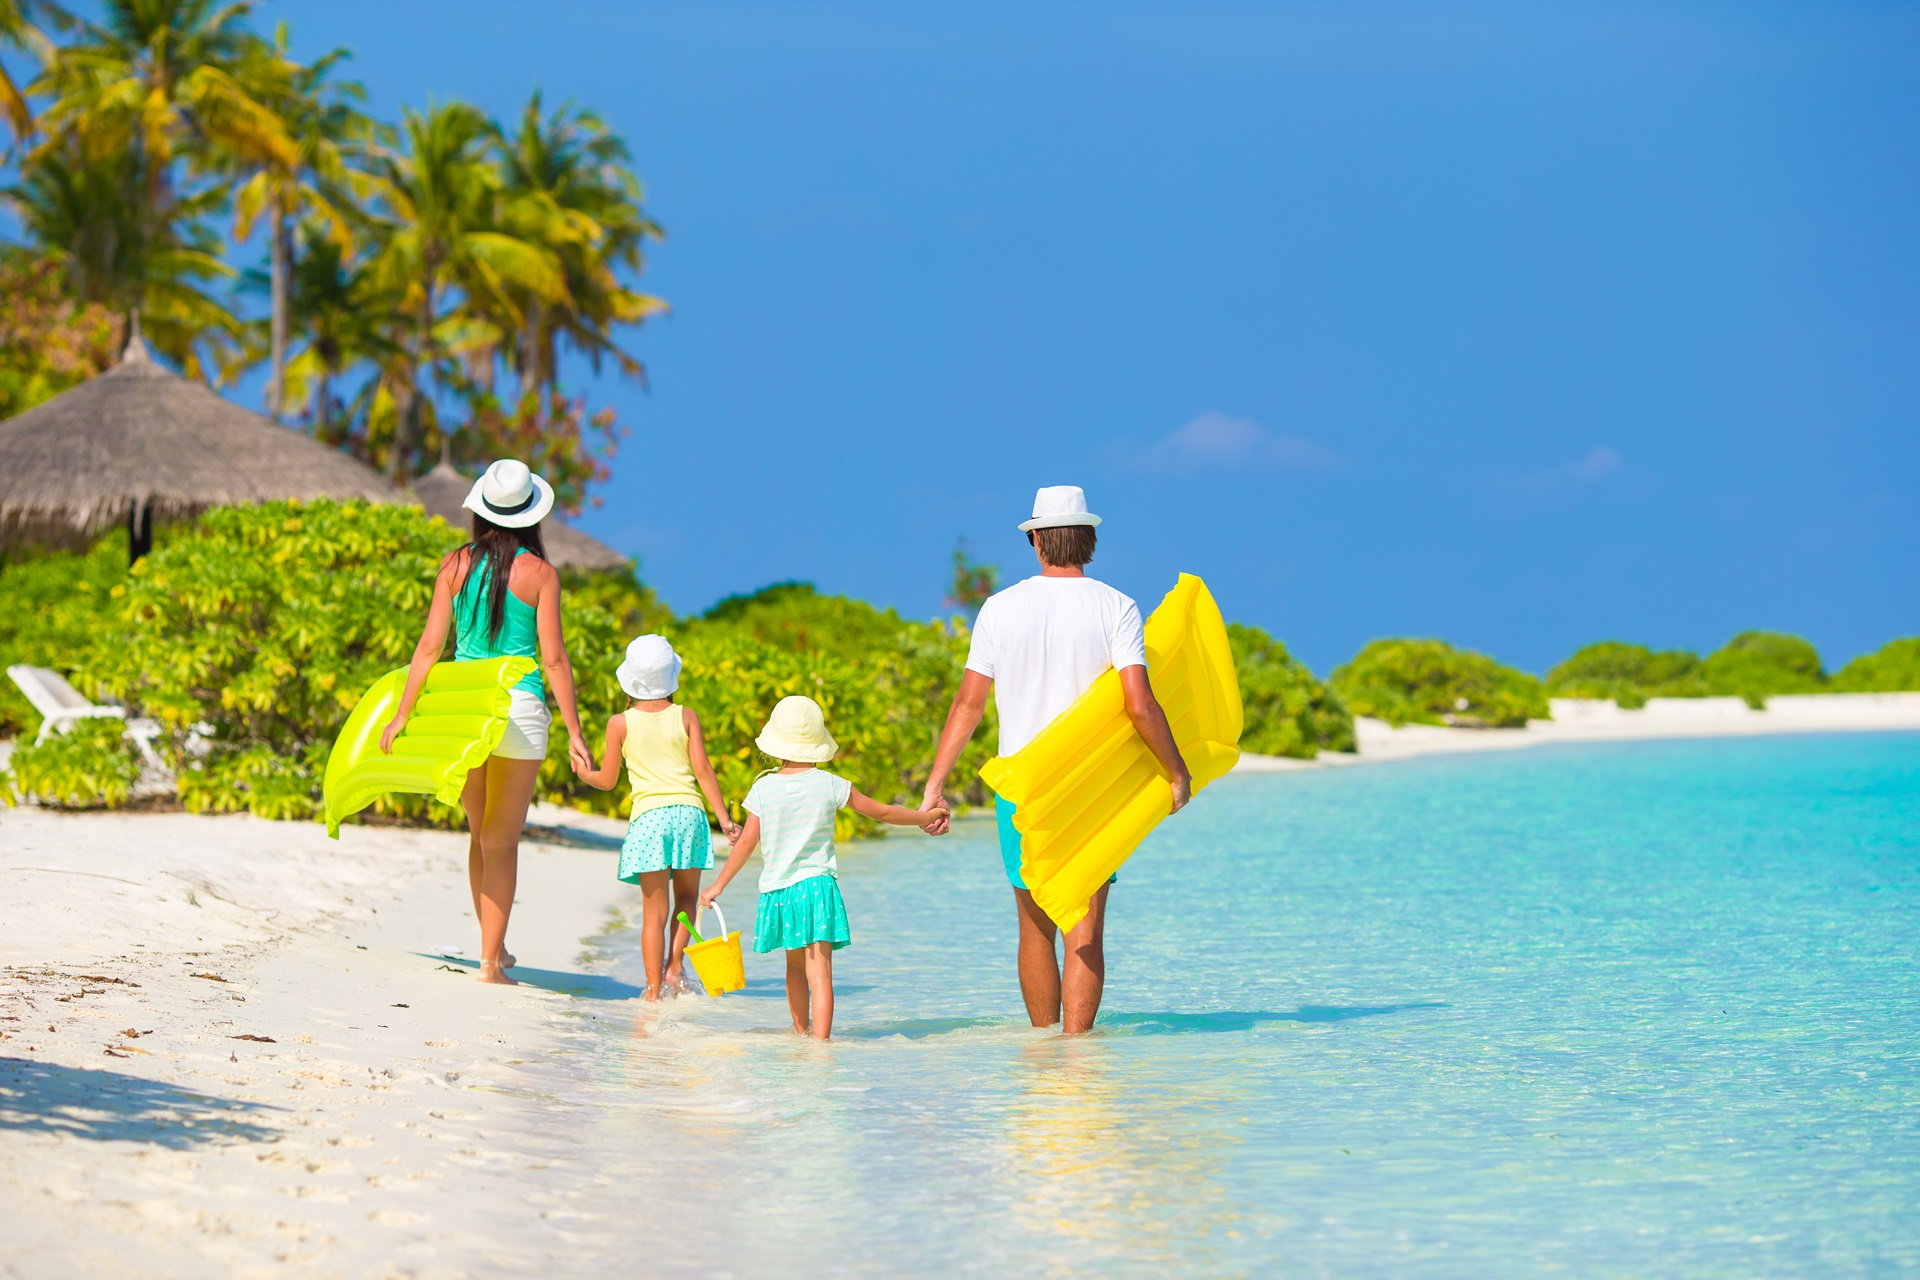 Family-friendly activities in Phuket